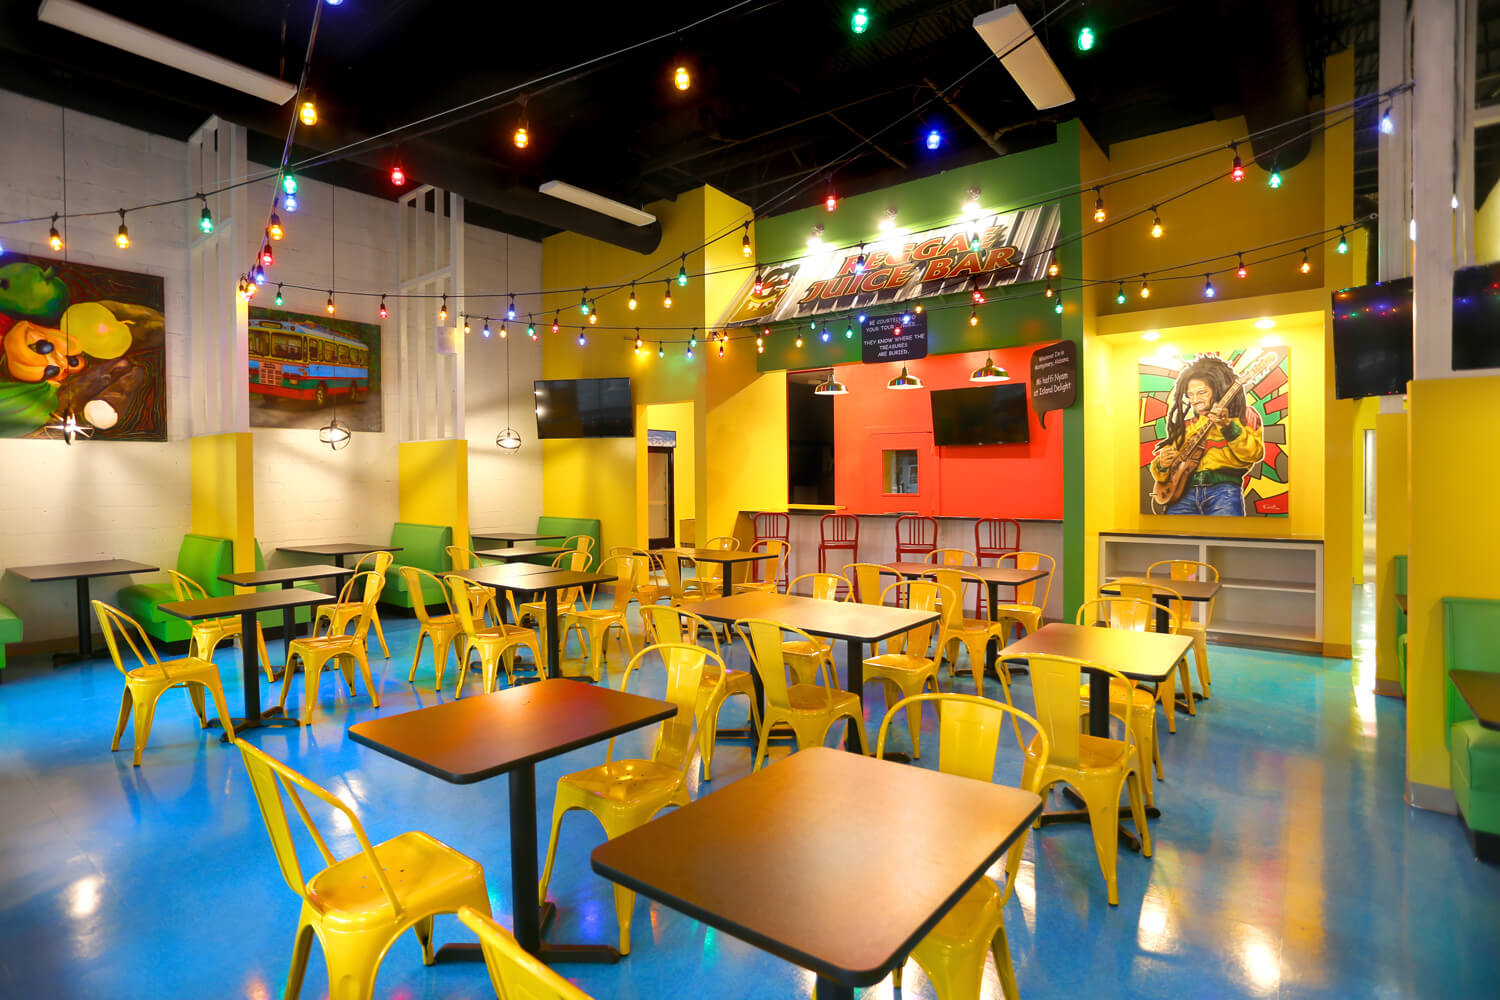 Designed by Foshee Architecture – Island Delight Restaurant Juice Bar